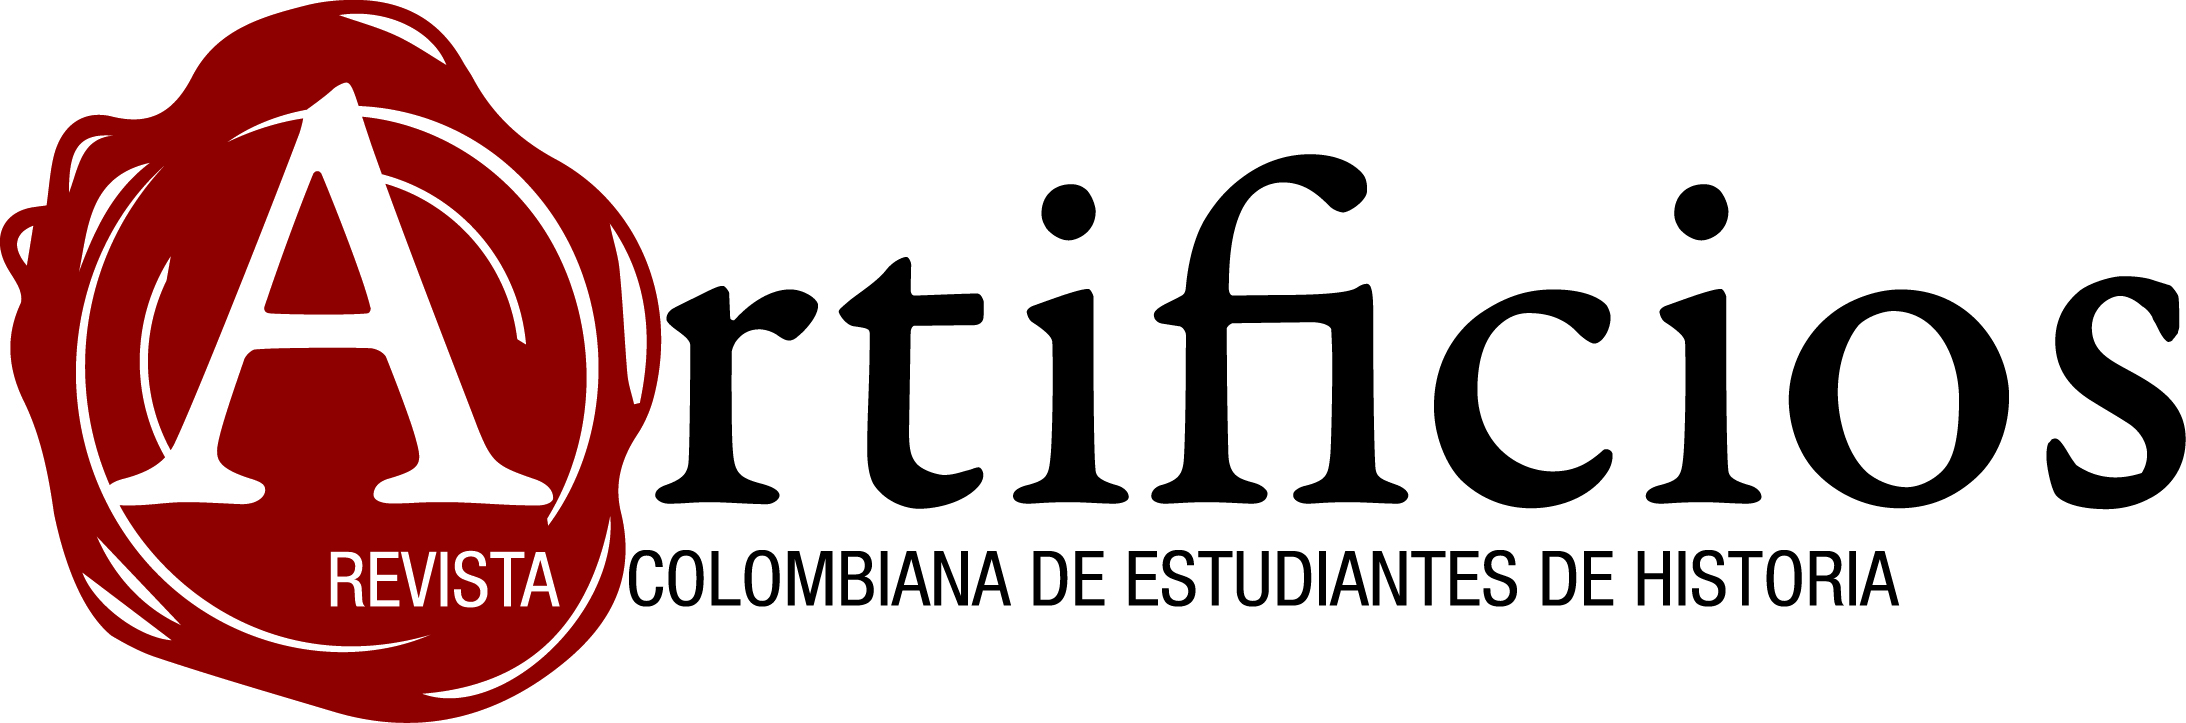 Logo revista artificios